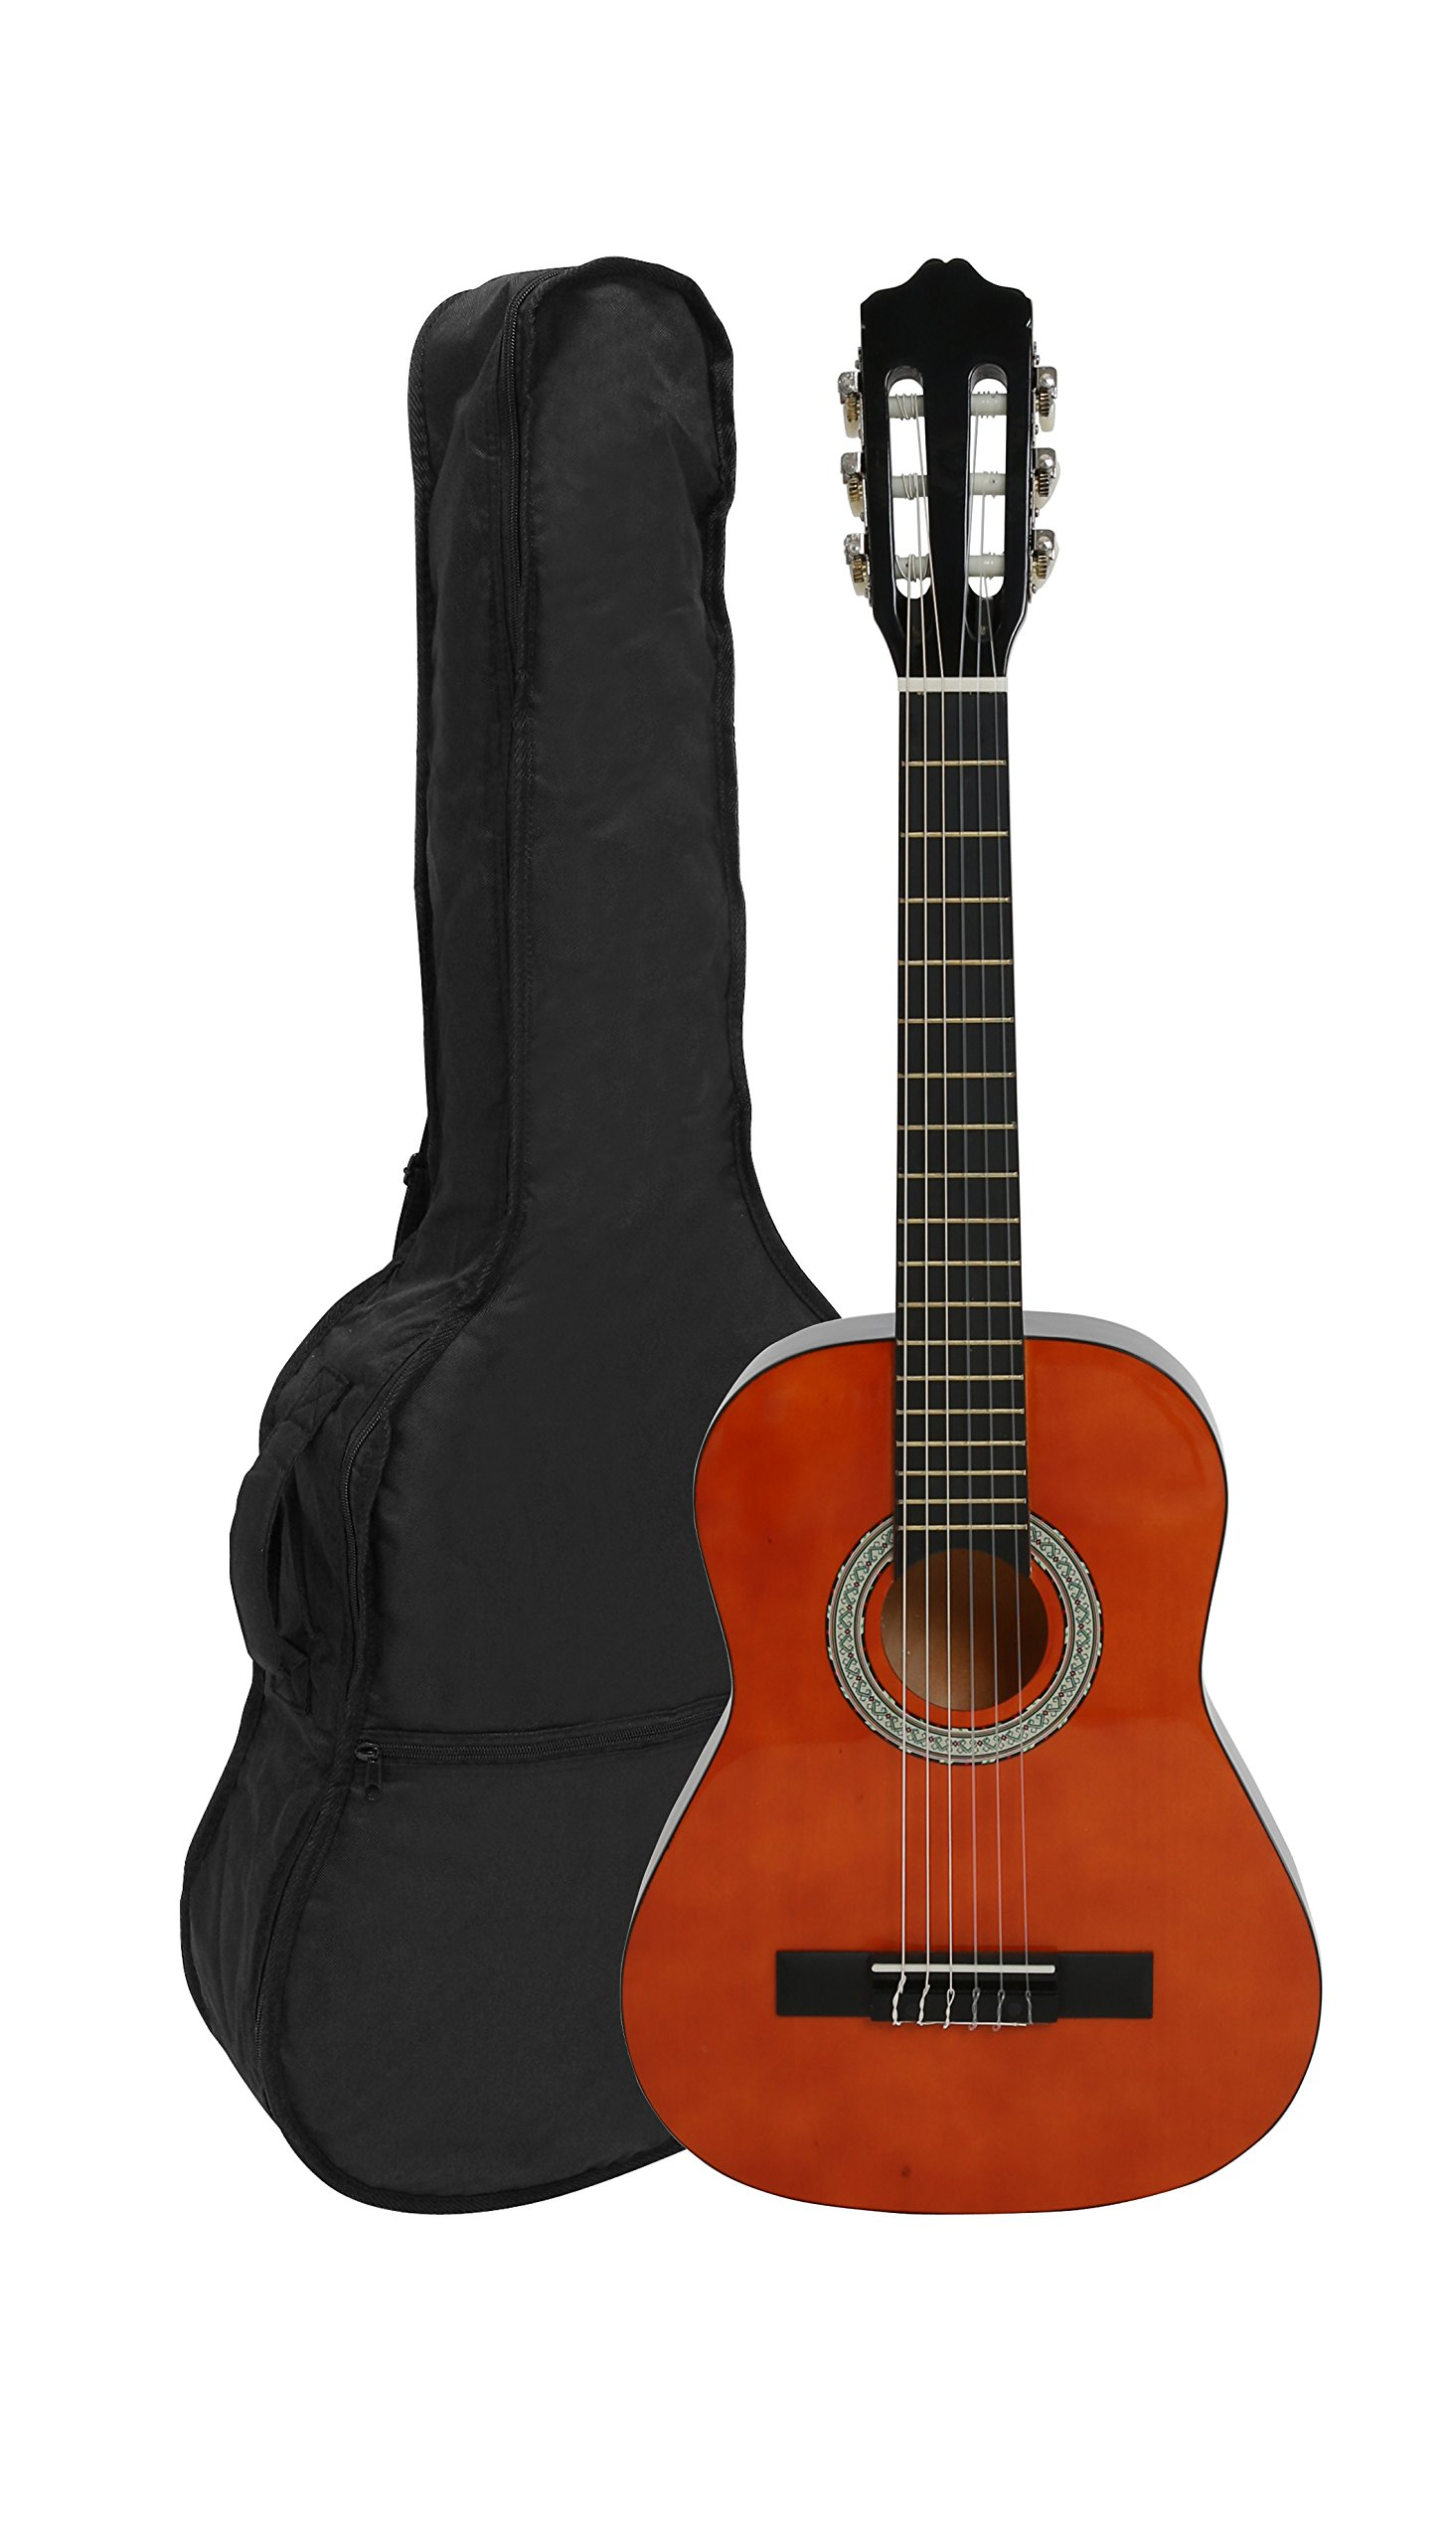 NAVARRA NV15 Classical Guitar 1/2 honey with black binding incl. Gig Bag with rucksack-straps and music sheet/accessories pocket, 2 Picks